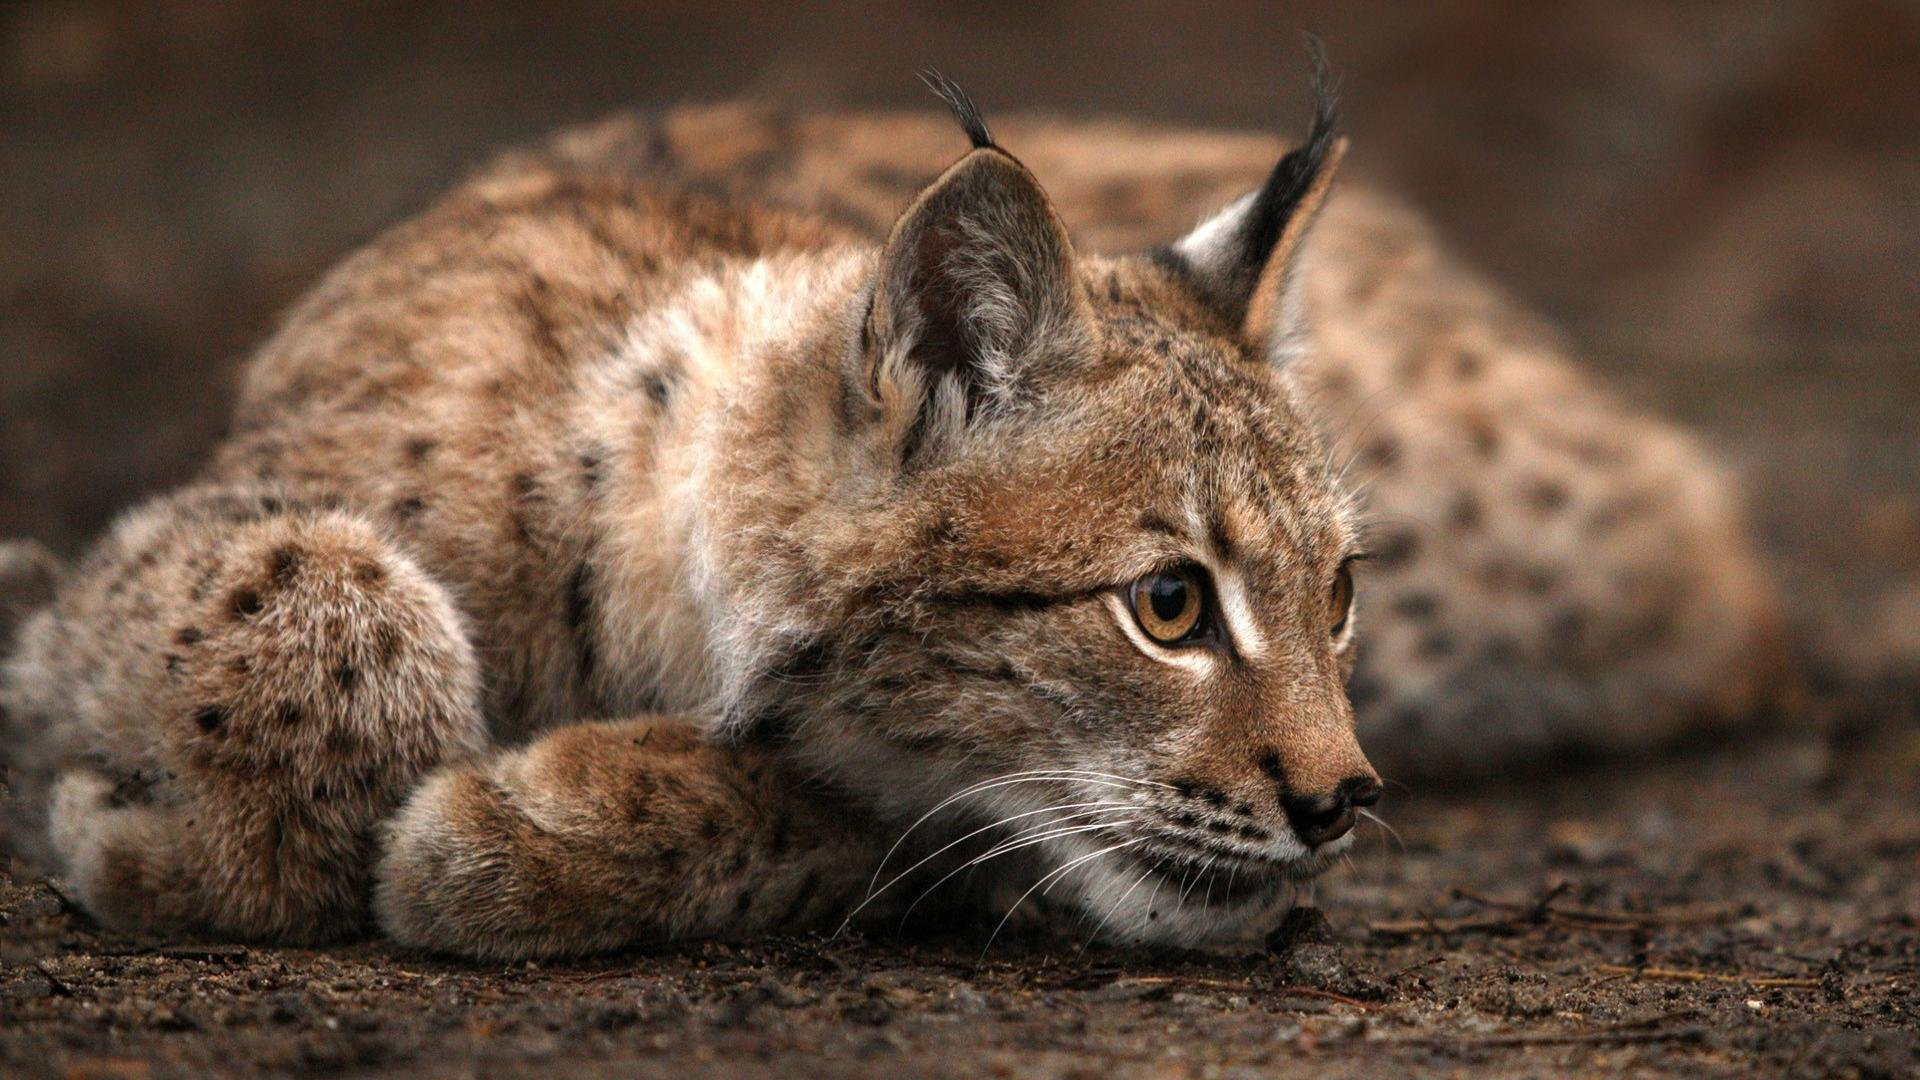 Download full hd 1920x1080 Lynx desktop background ID:105798 for free